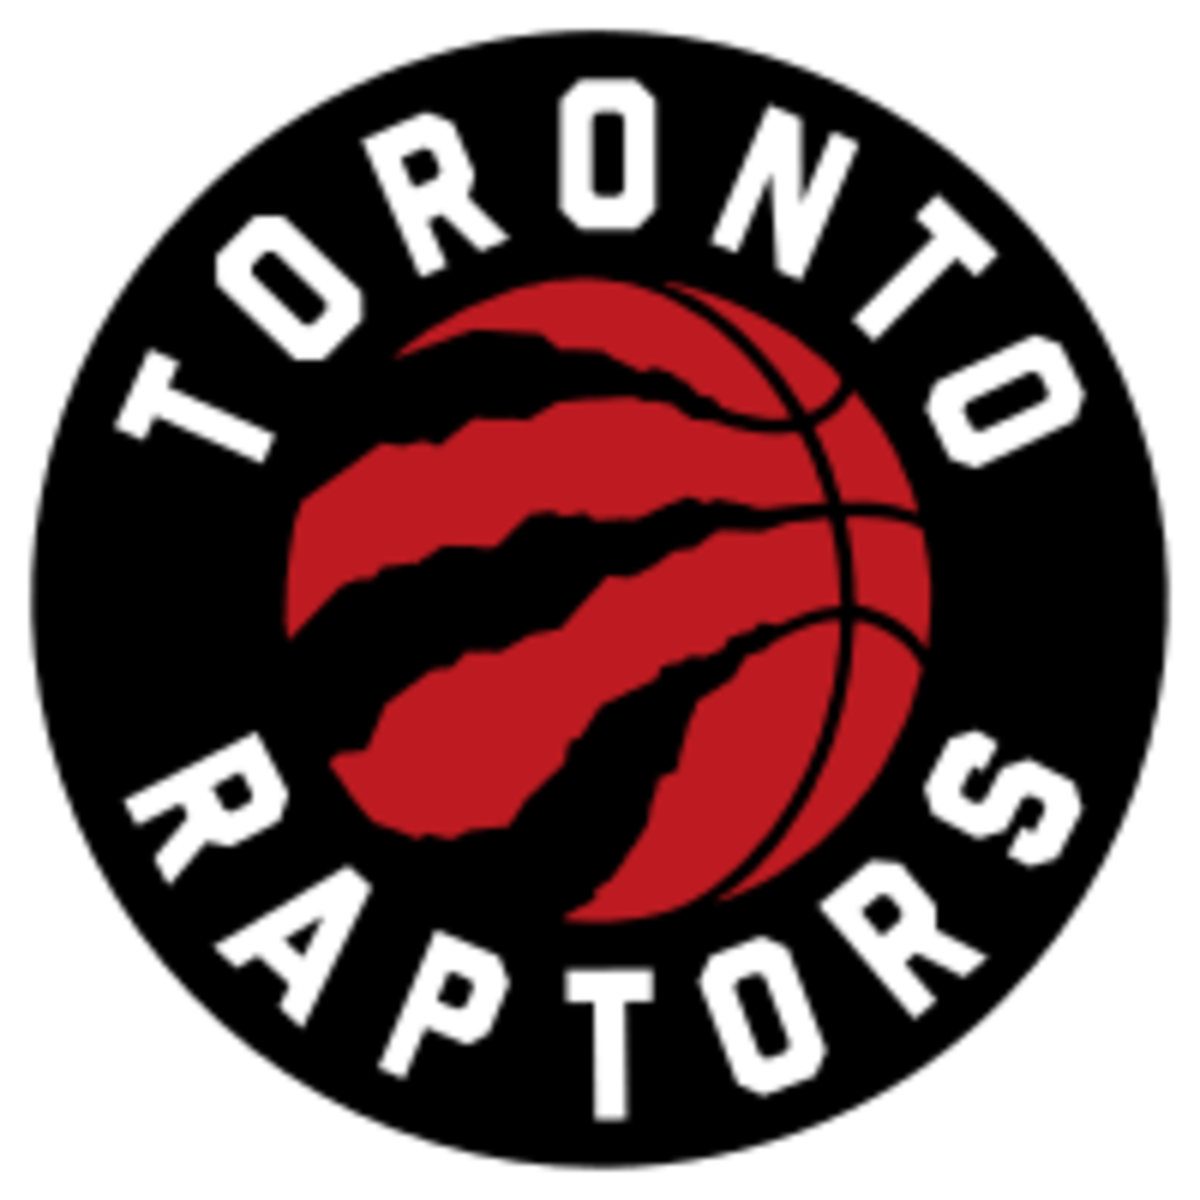 The Raptors finished 27-45 to give them the 12th best record in the East.